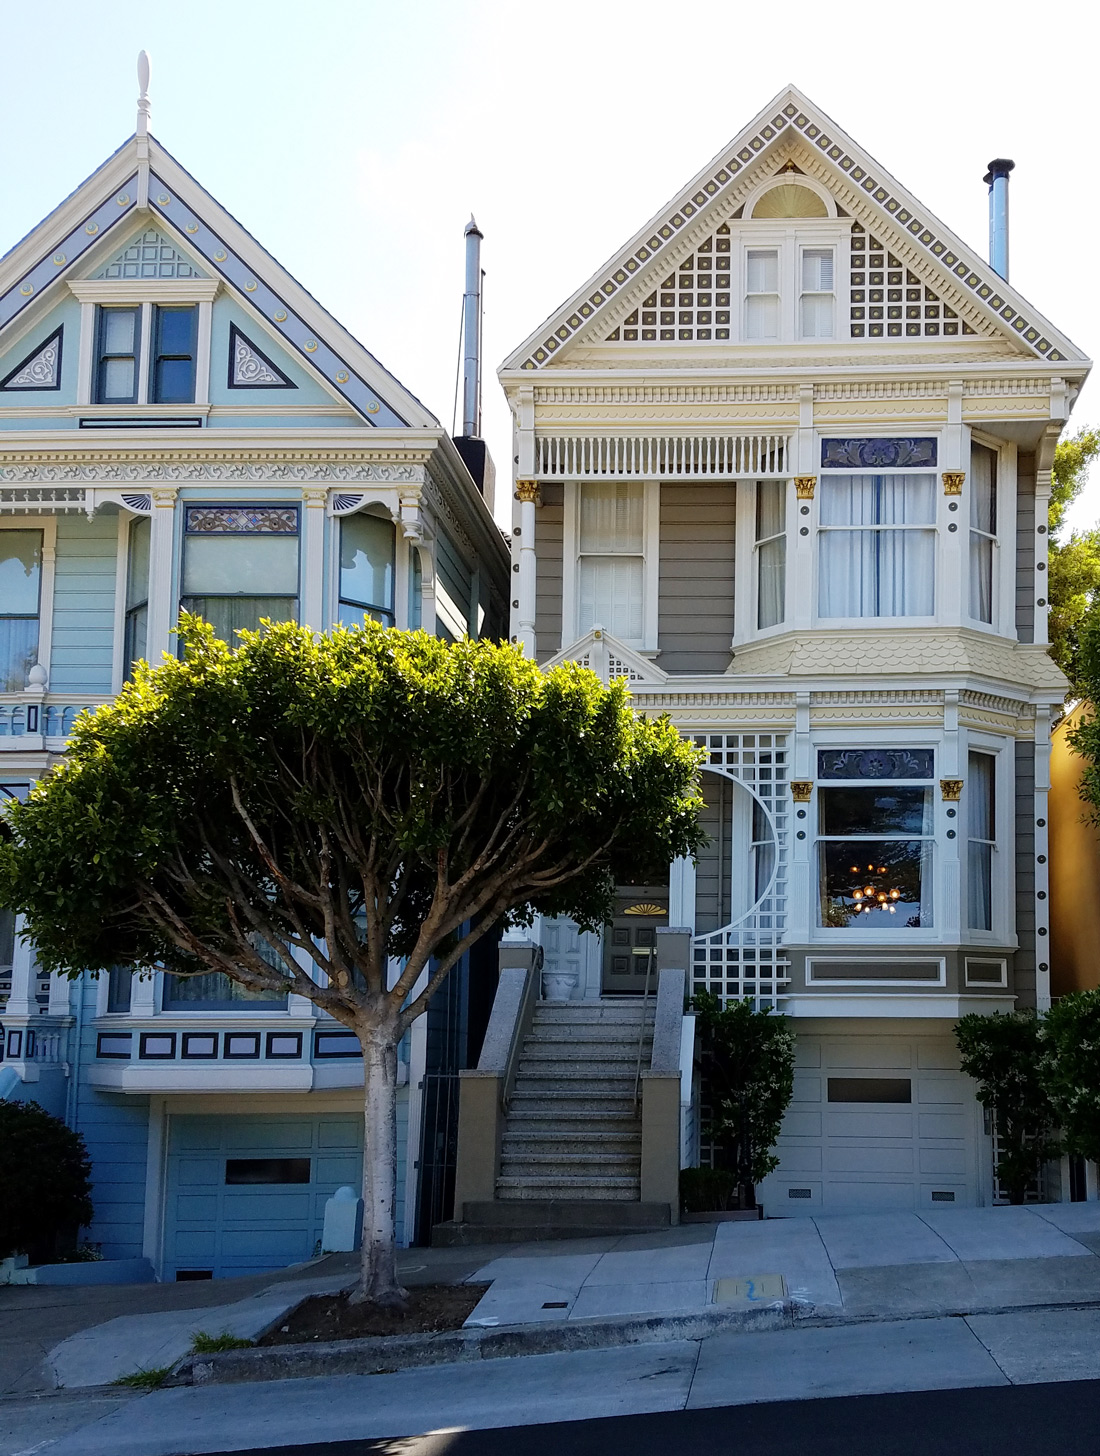 Bag-at-you---Lifestyle-blog---San-Francisco---Painted-Ladies---Houses